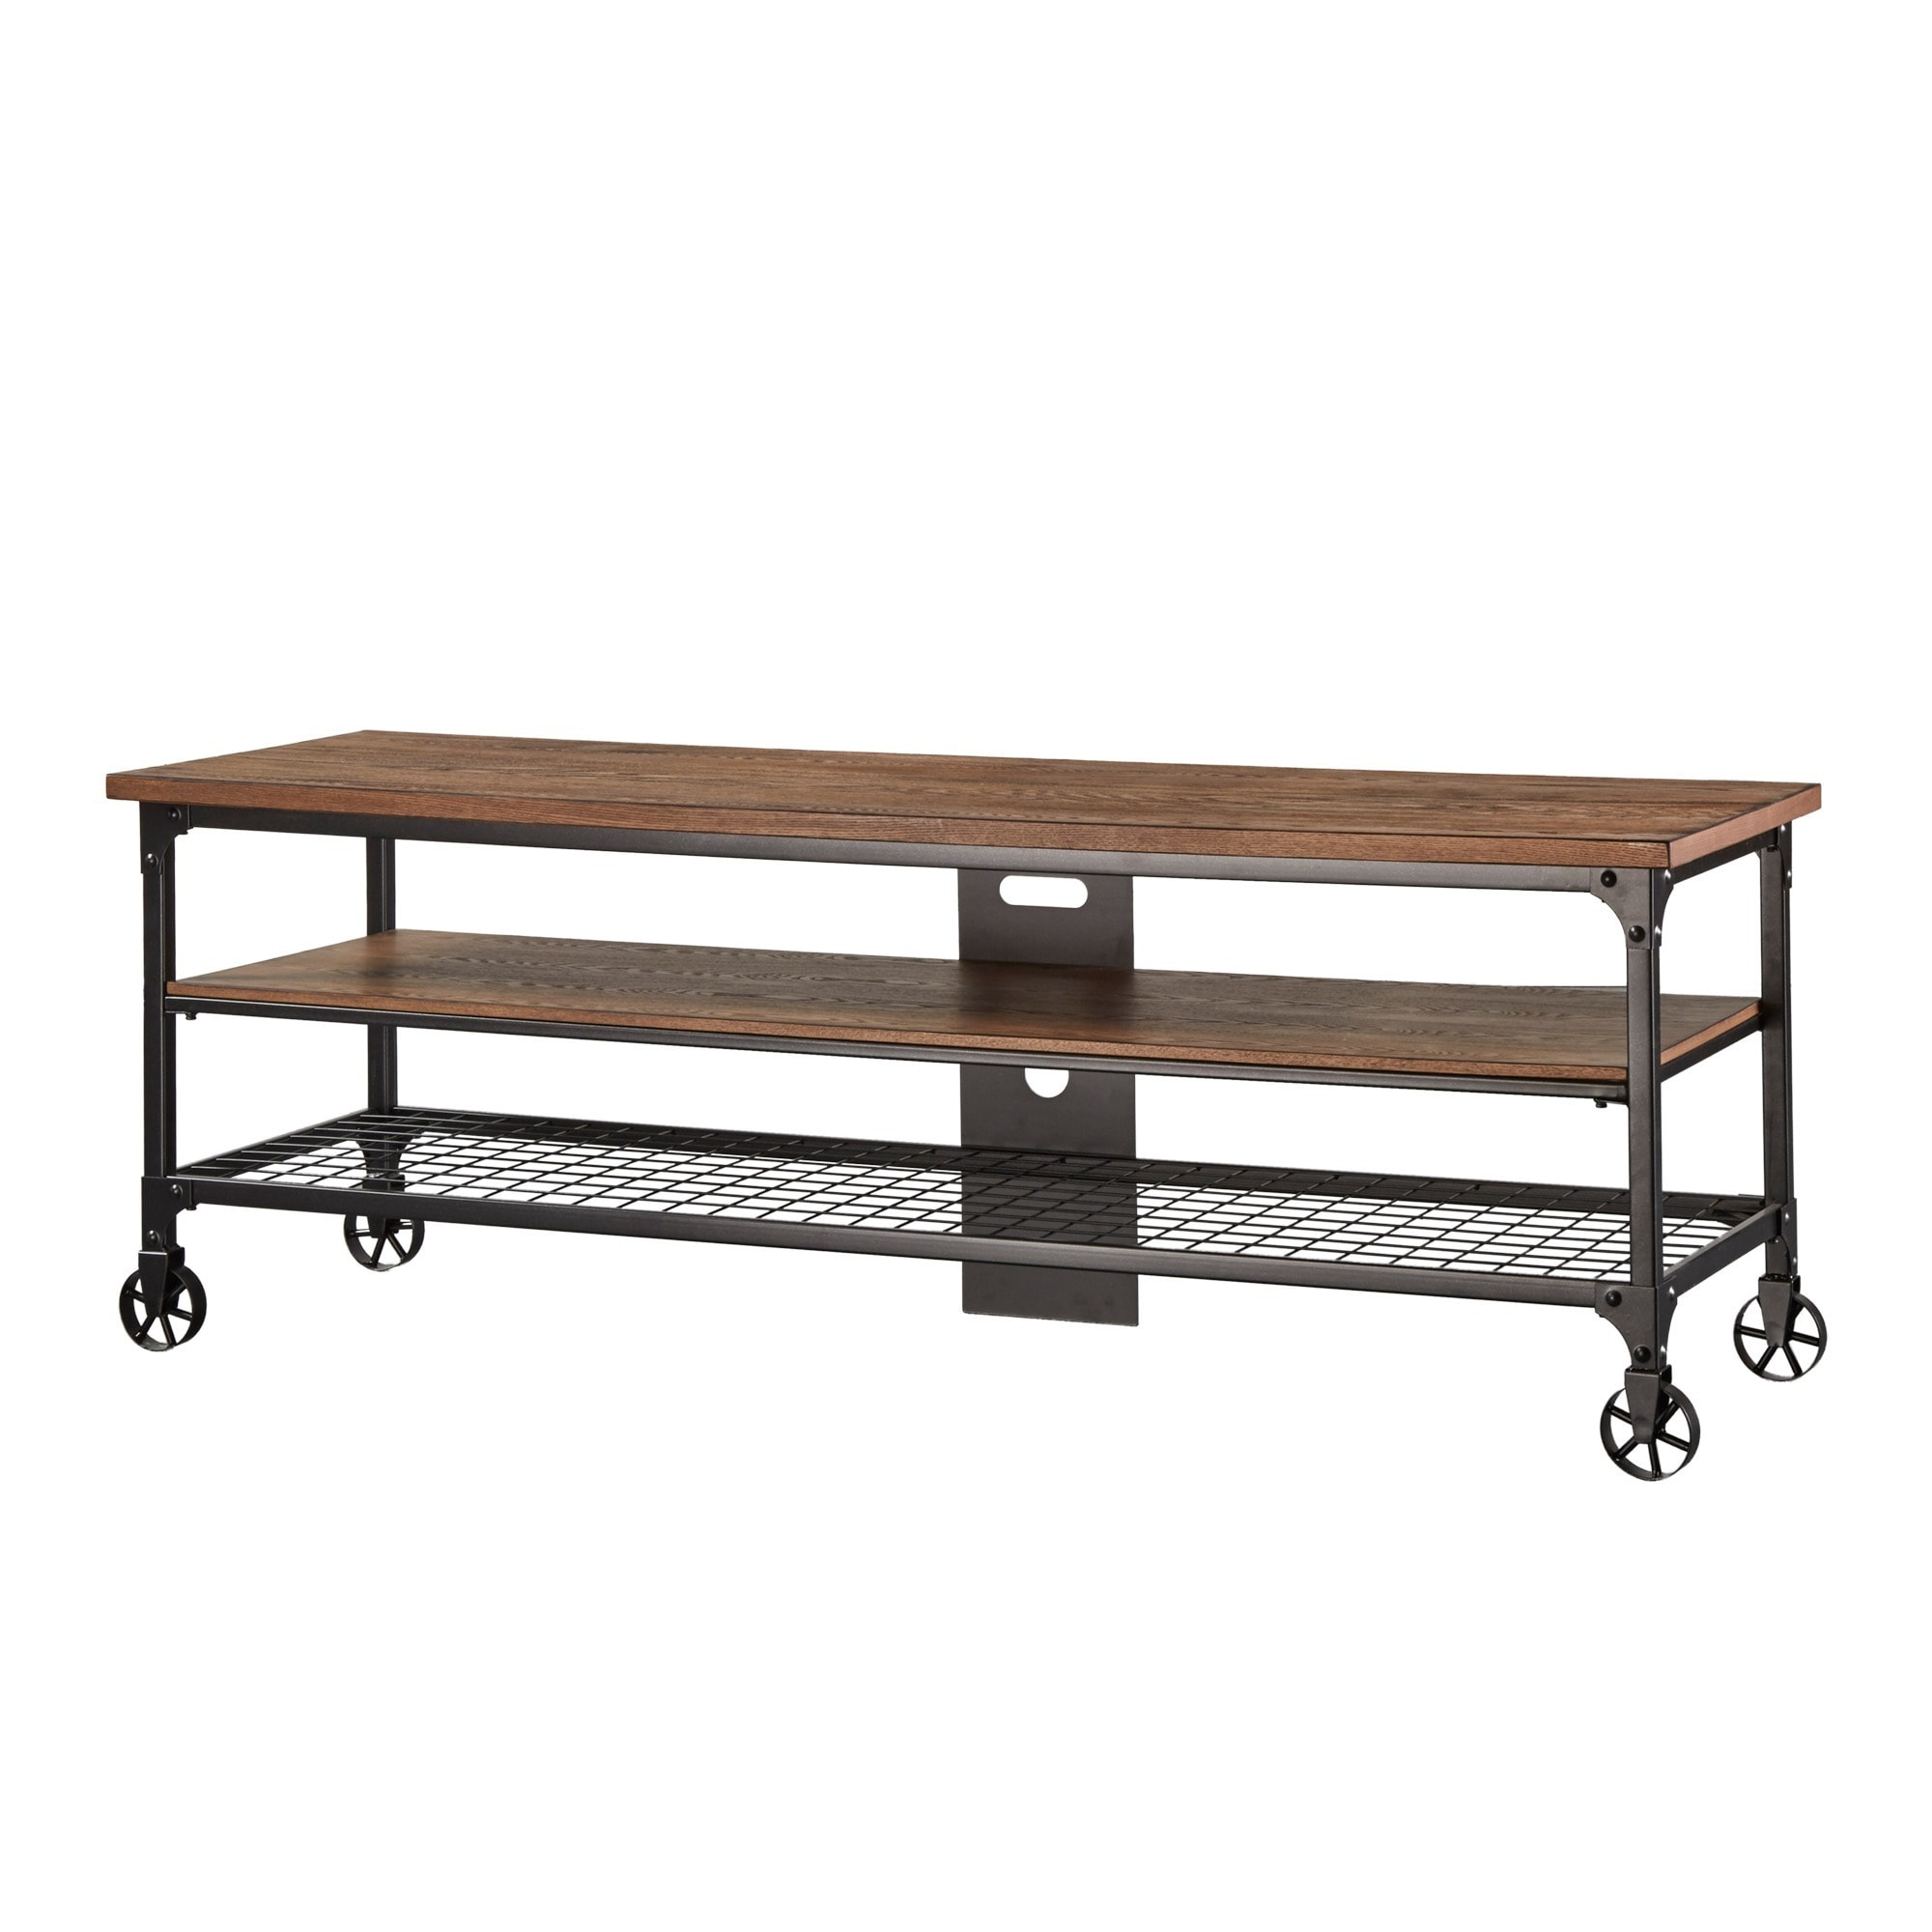 Nelson Industrial Modern Rustic Console Sofa Table TV Stand by iNSPIRE Q  Classic - Free Shipping Today - Overstock.com - 15867330